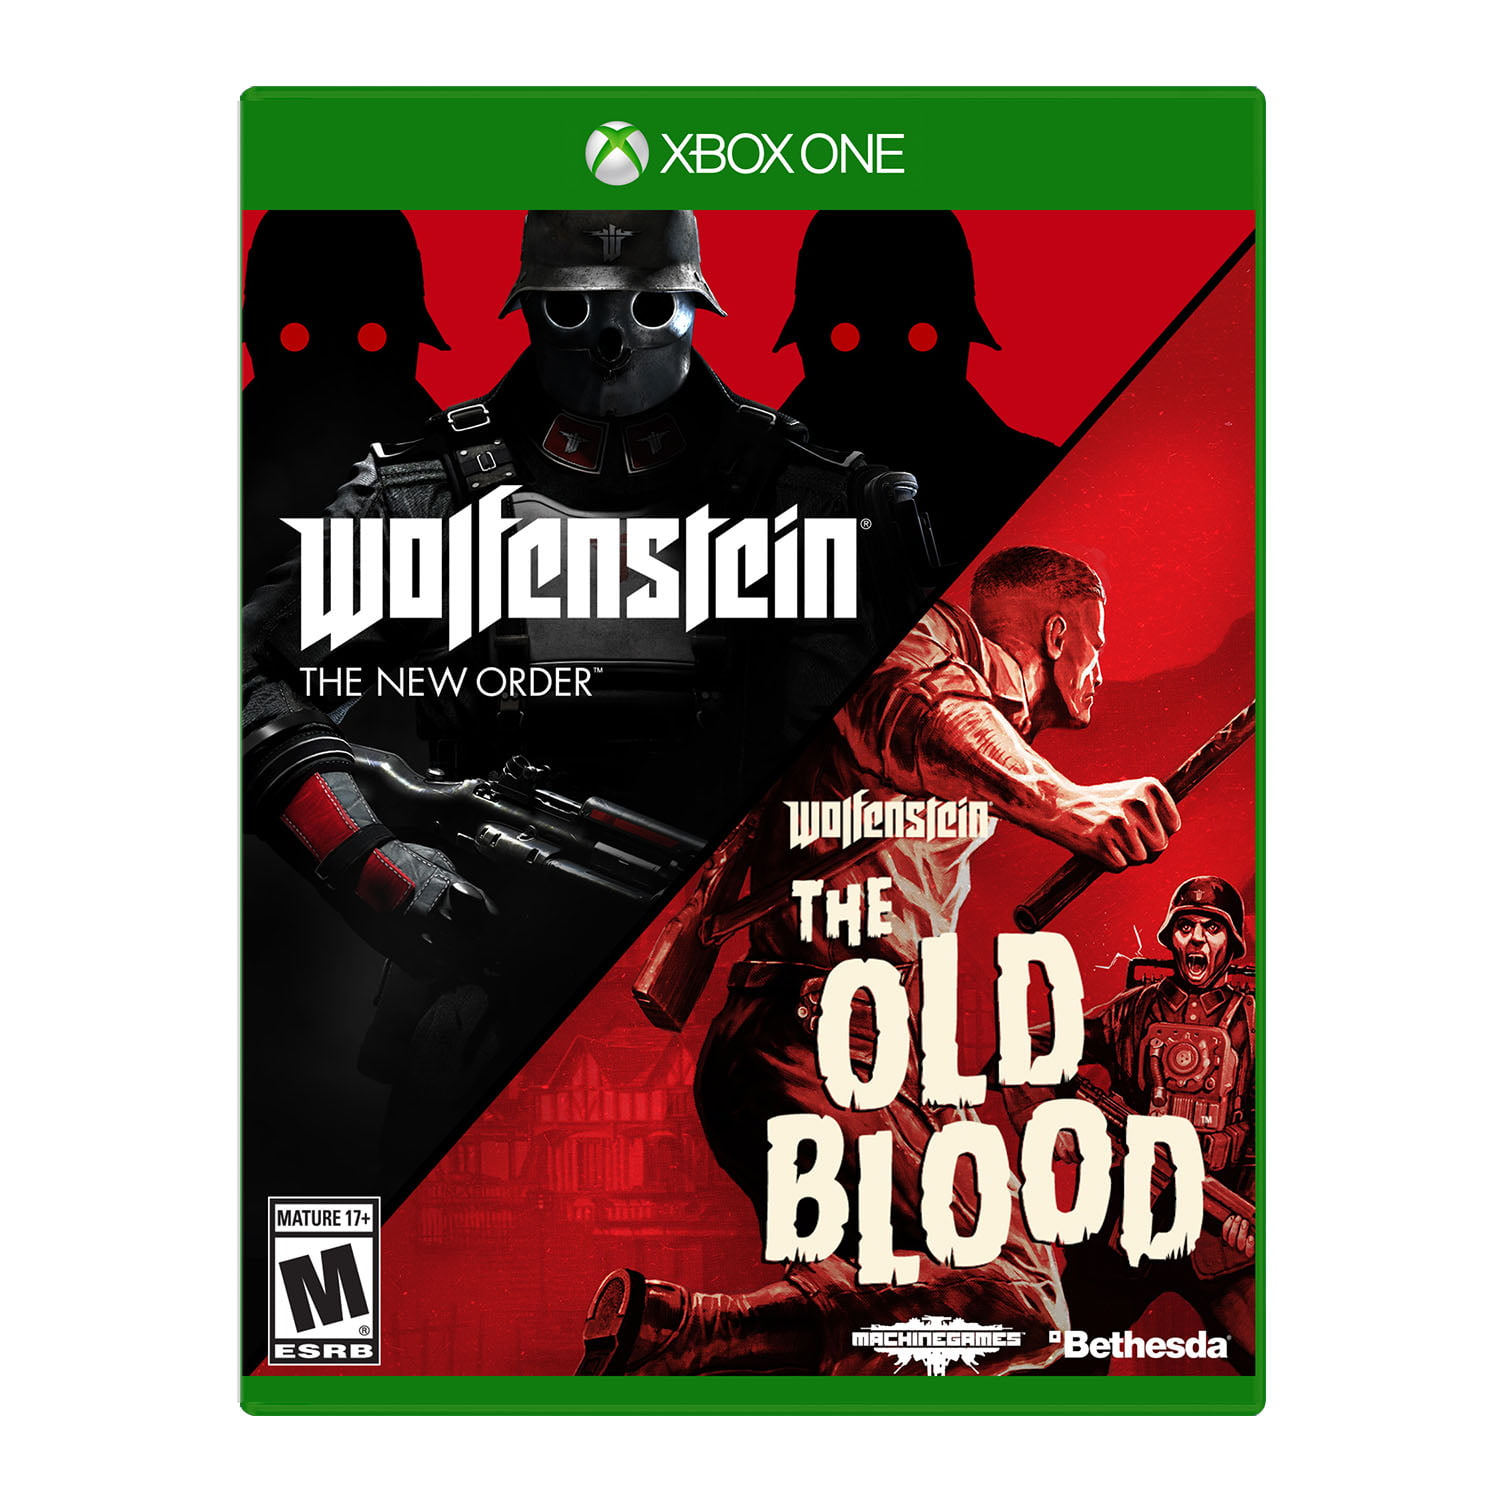 Wolfenstein: The Two Pack, Bethesda, Xbox One, 093155172128 by Bethesda